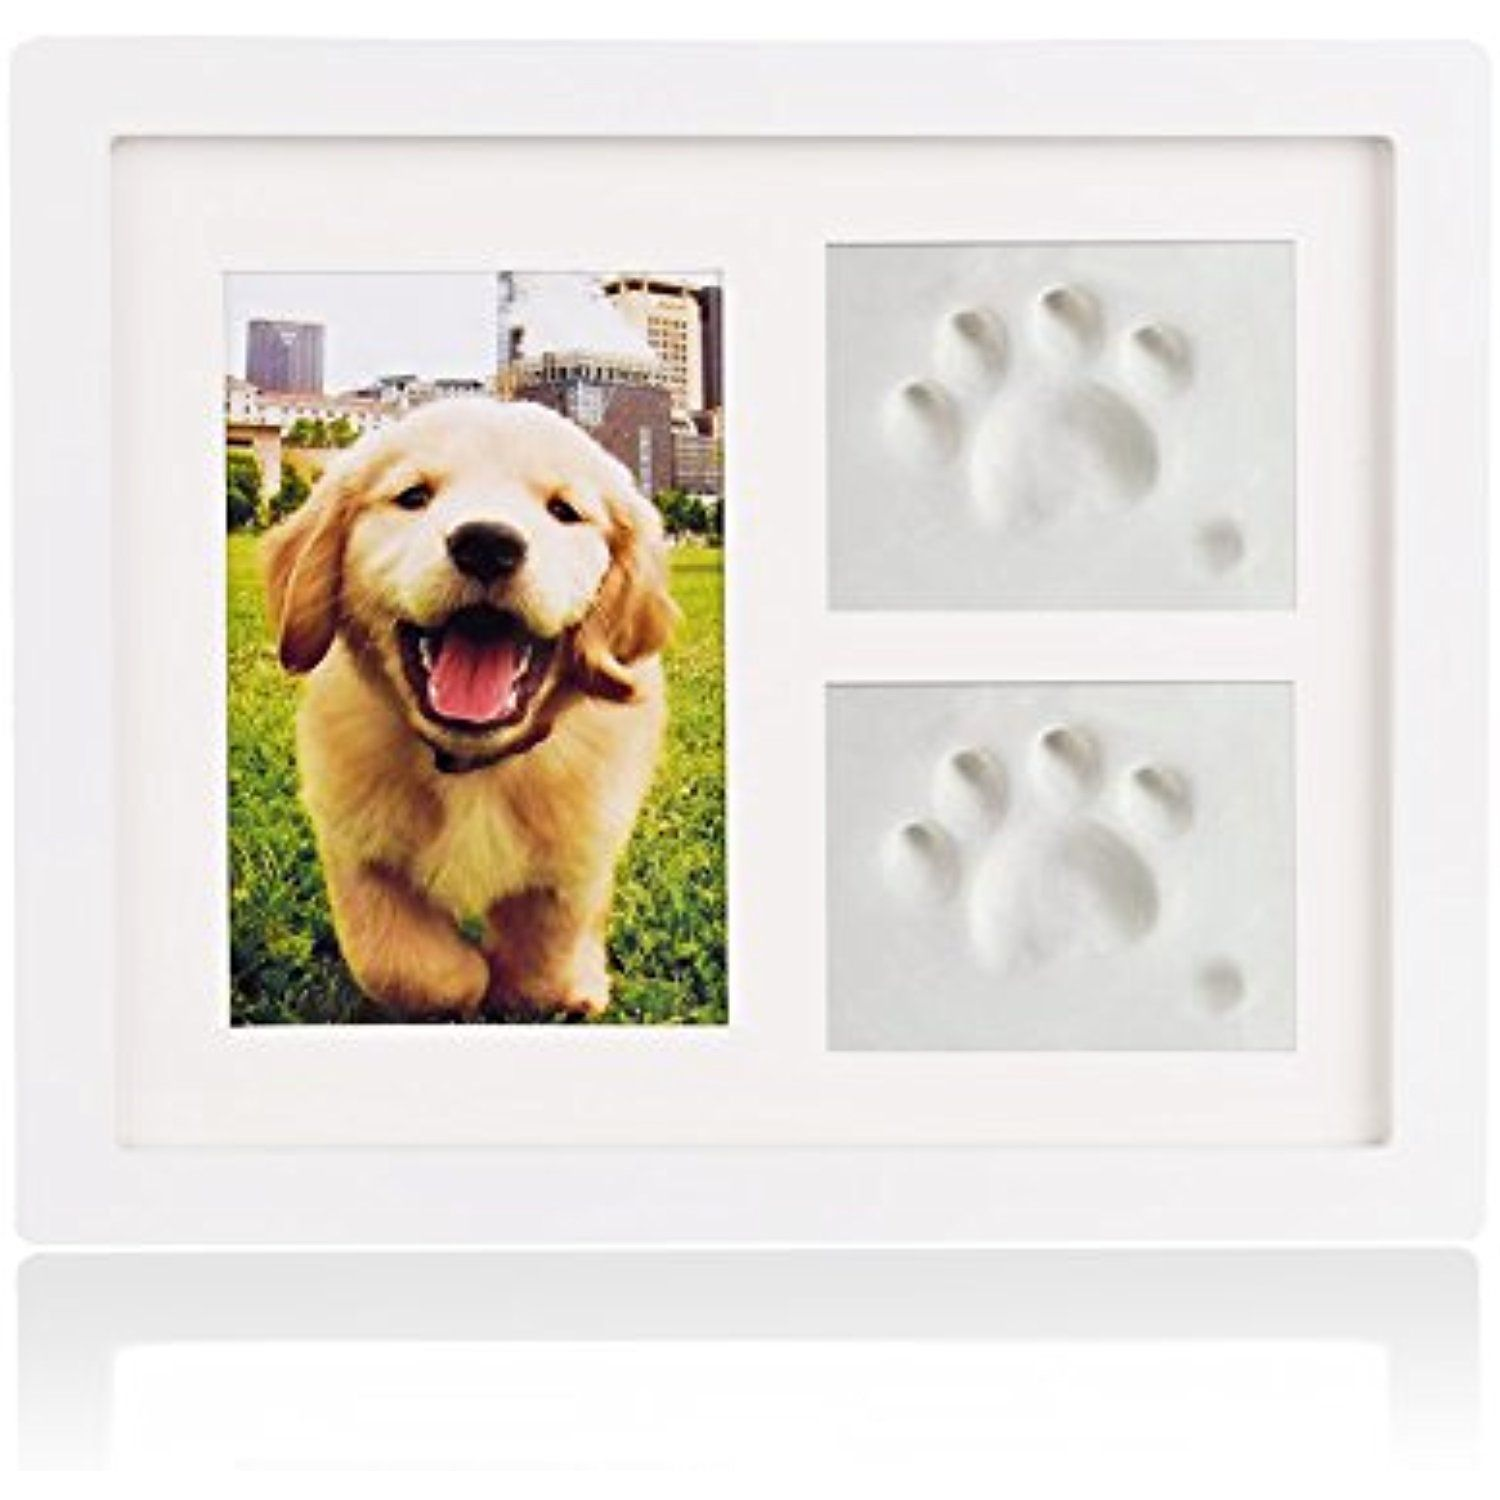 9f6e640f7603 Petacc Pet Memorial Picture Frame Pet Paw Print Photo Frame Kit Pet  Keepsakes Kit for Cats and Dogs, with Clays, for Room Wall or Table Decor  (white) ...